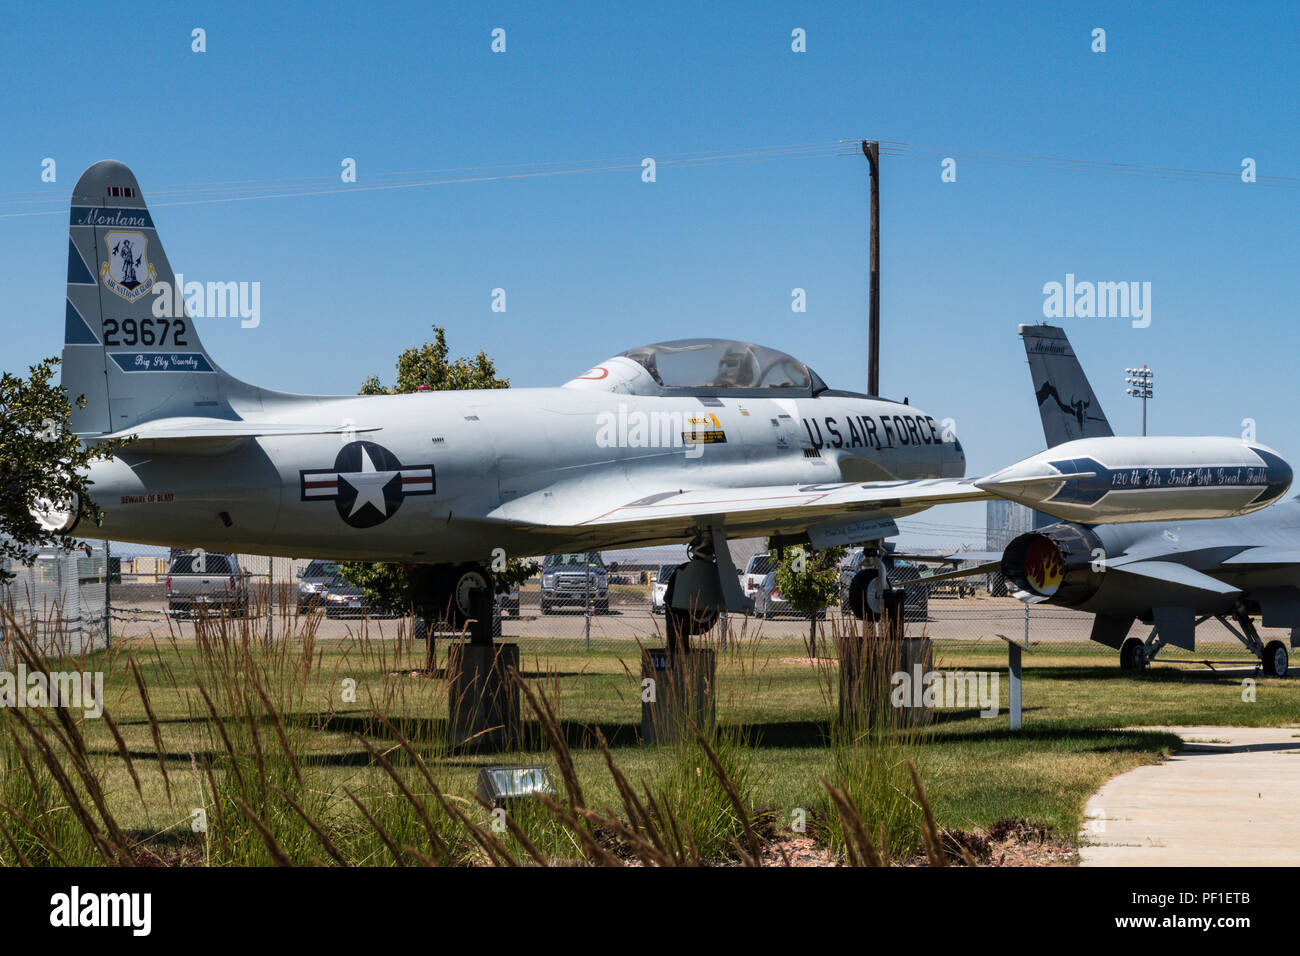 The 120th Airlift Wing, Montana Air National Guard, in Great Falls, Montana - Stock Image